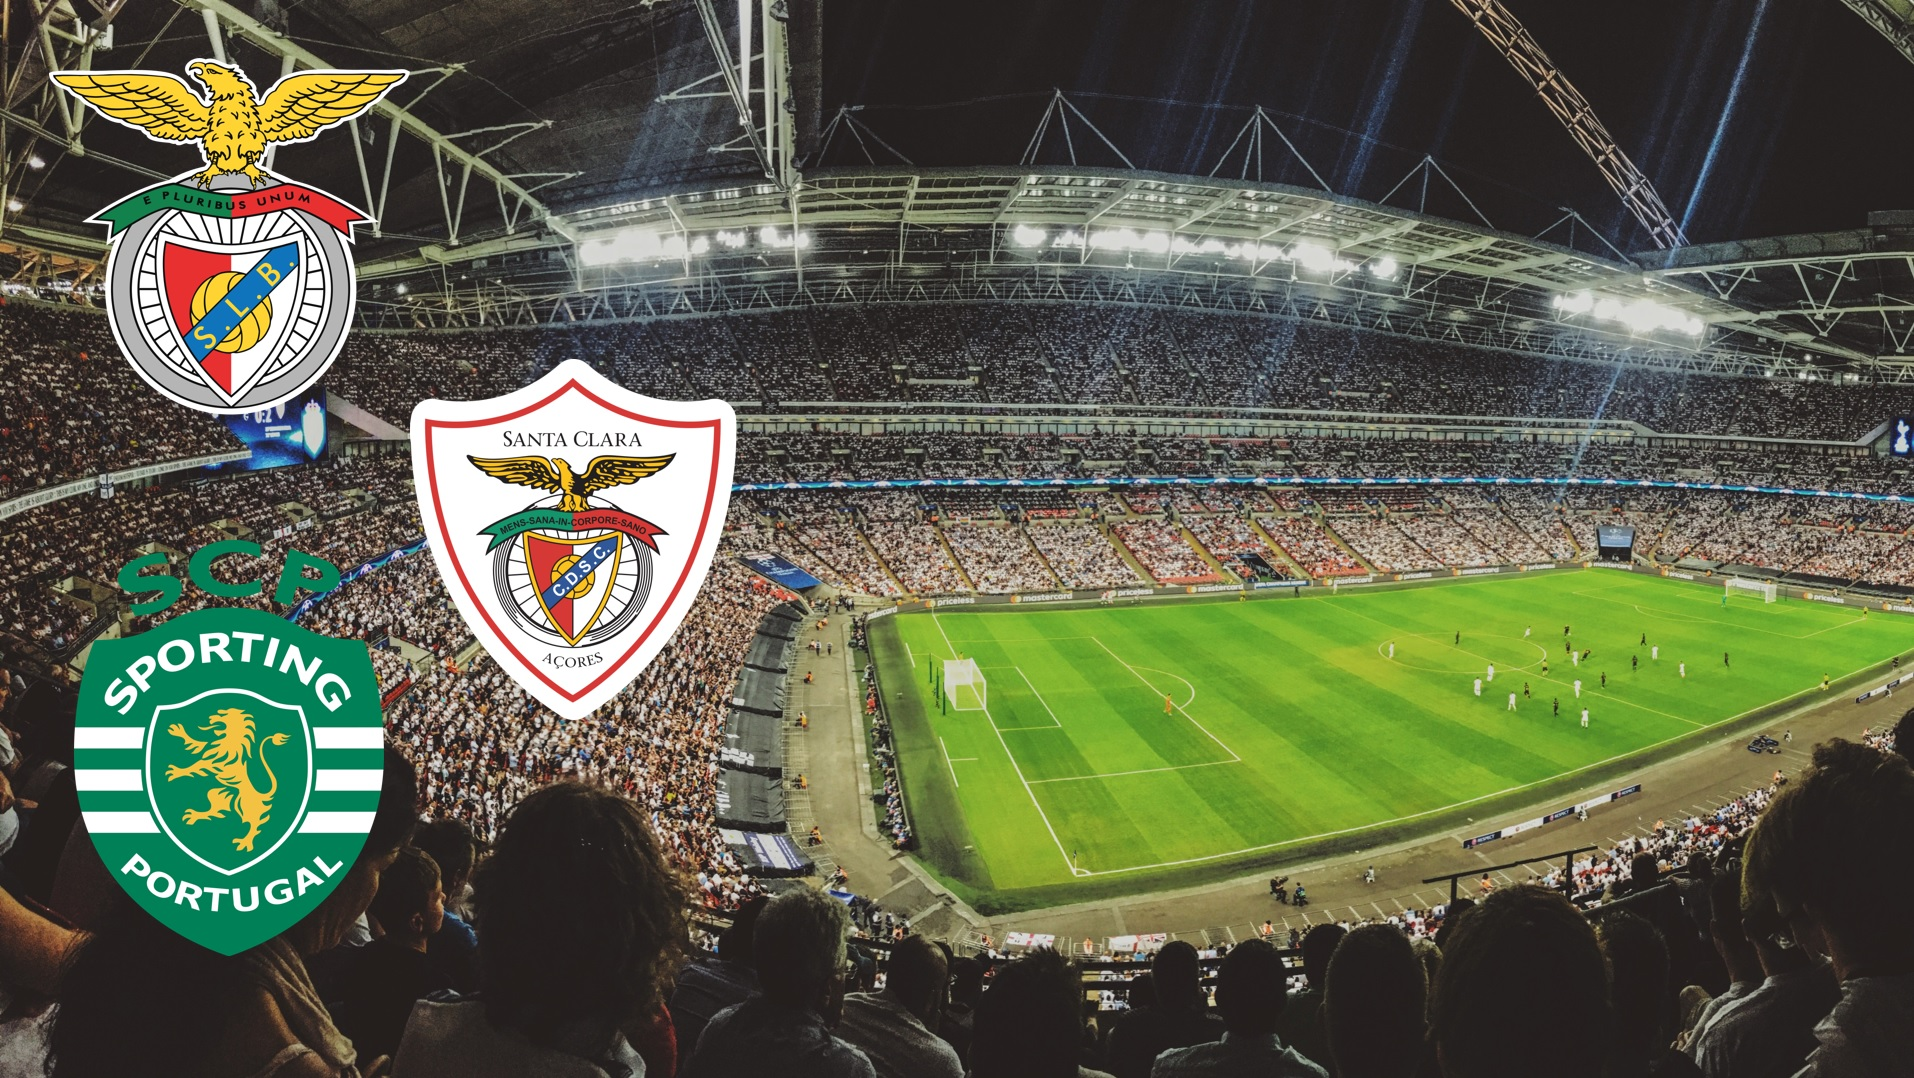 Portuguese football club - Benfica, Sporting and Santa Clara